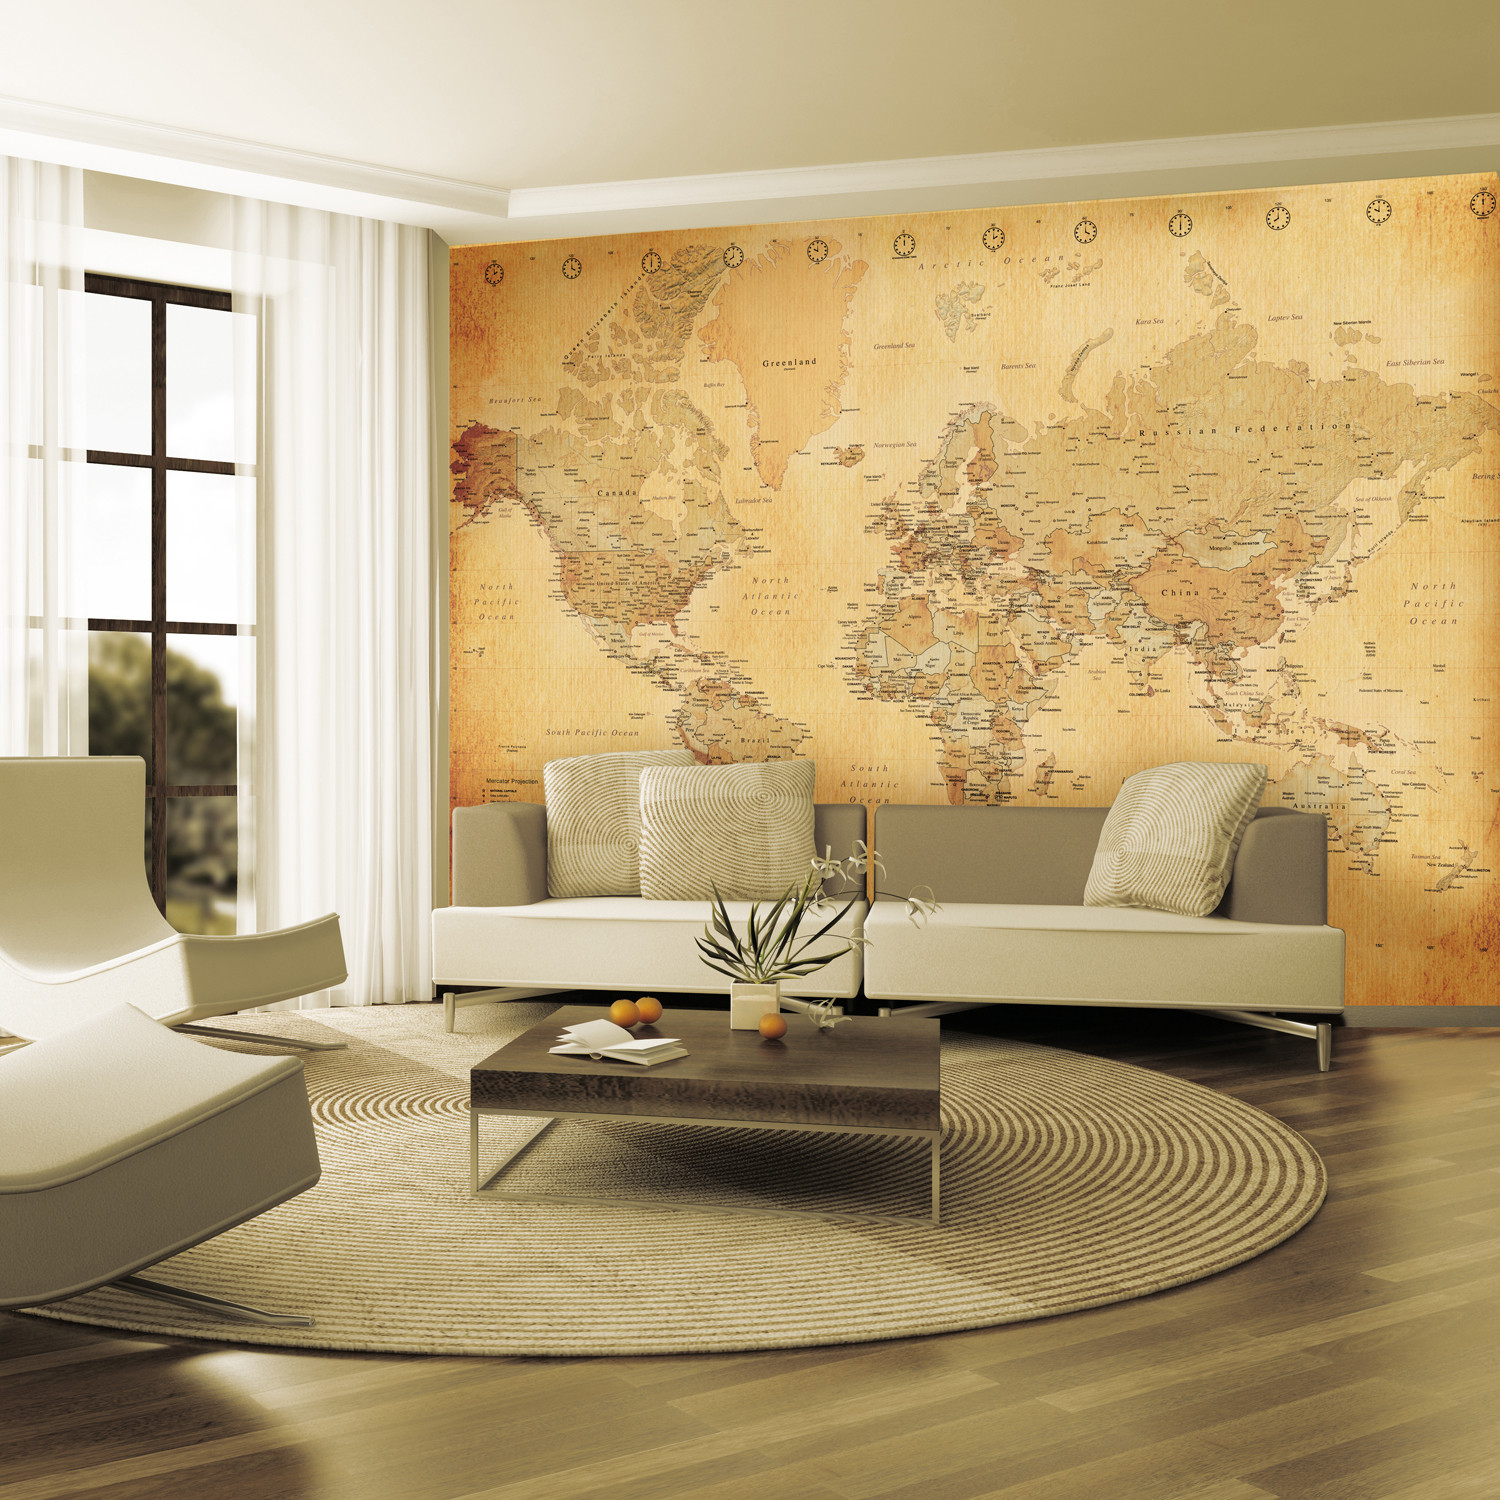 Vintage world map 1 wall murals touch of modern for Create wall mural